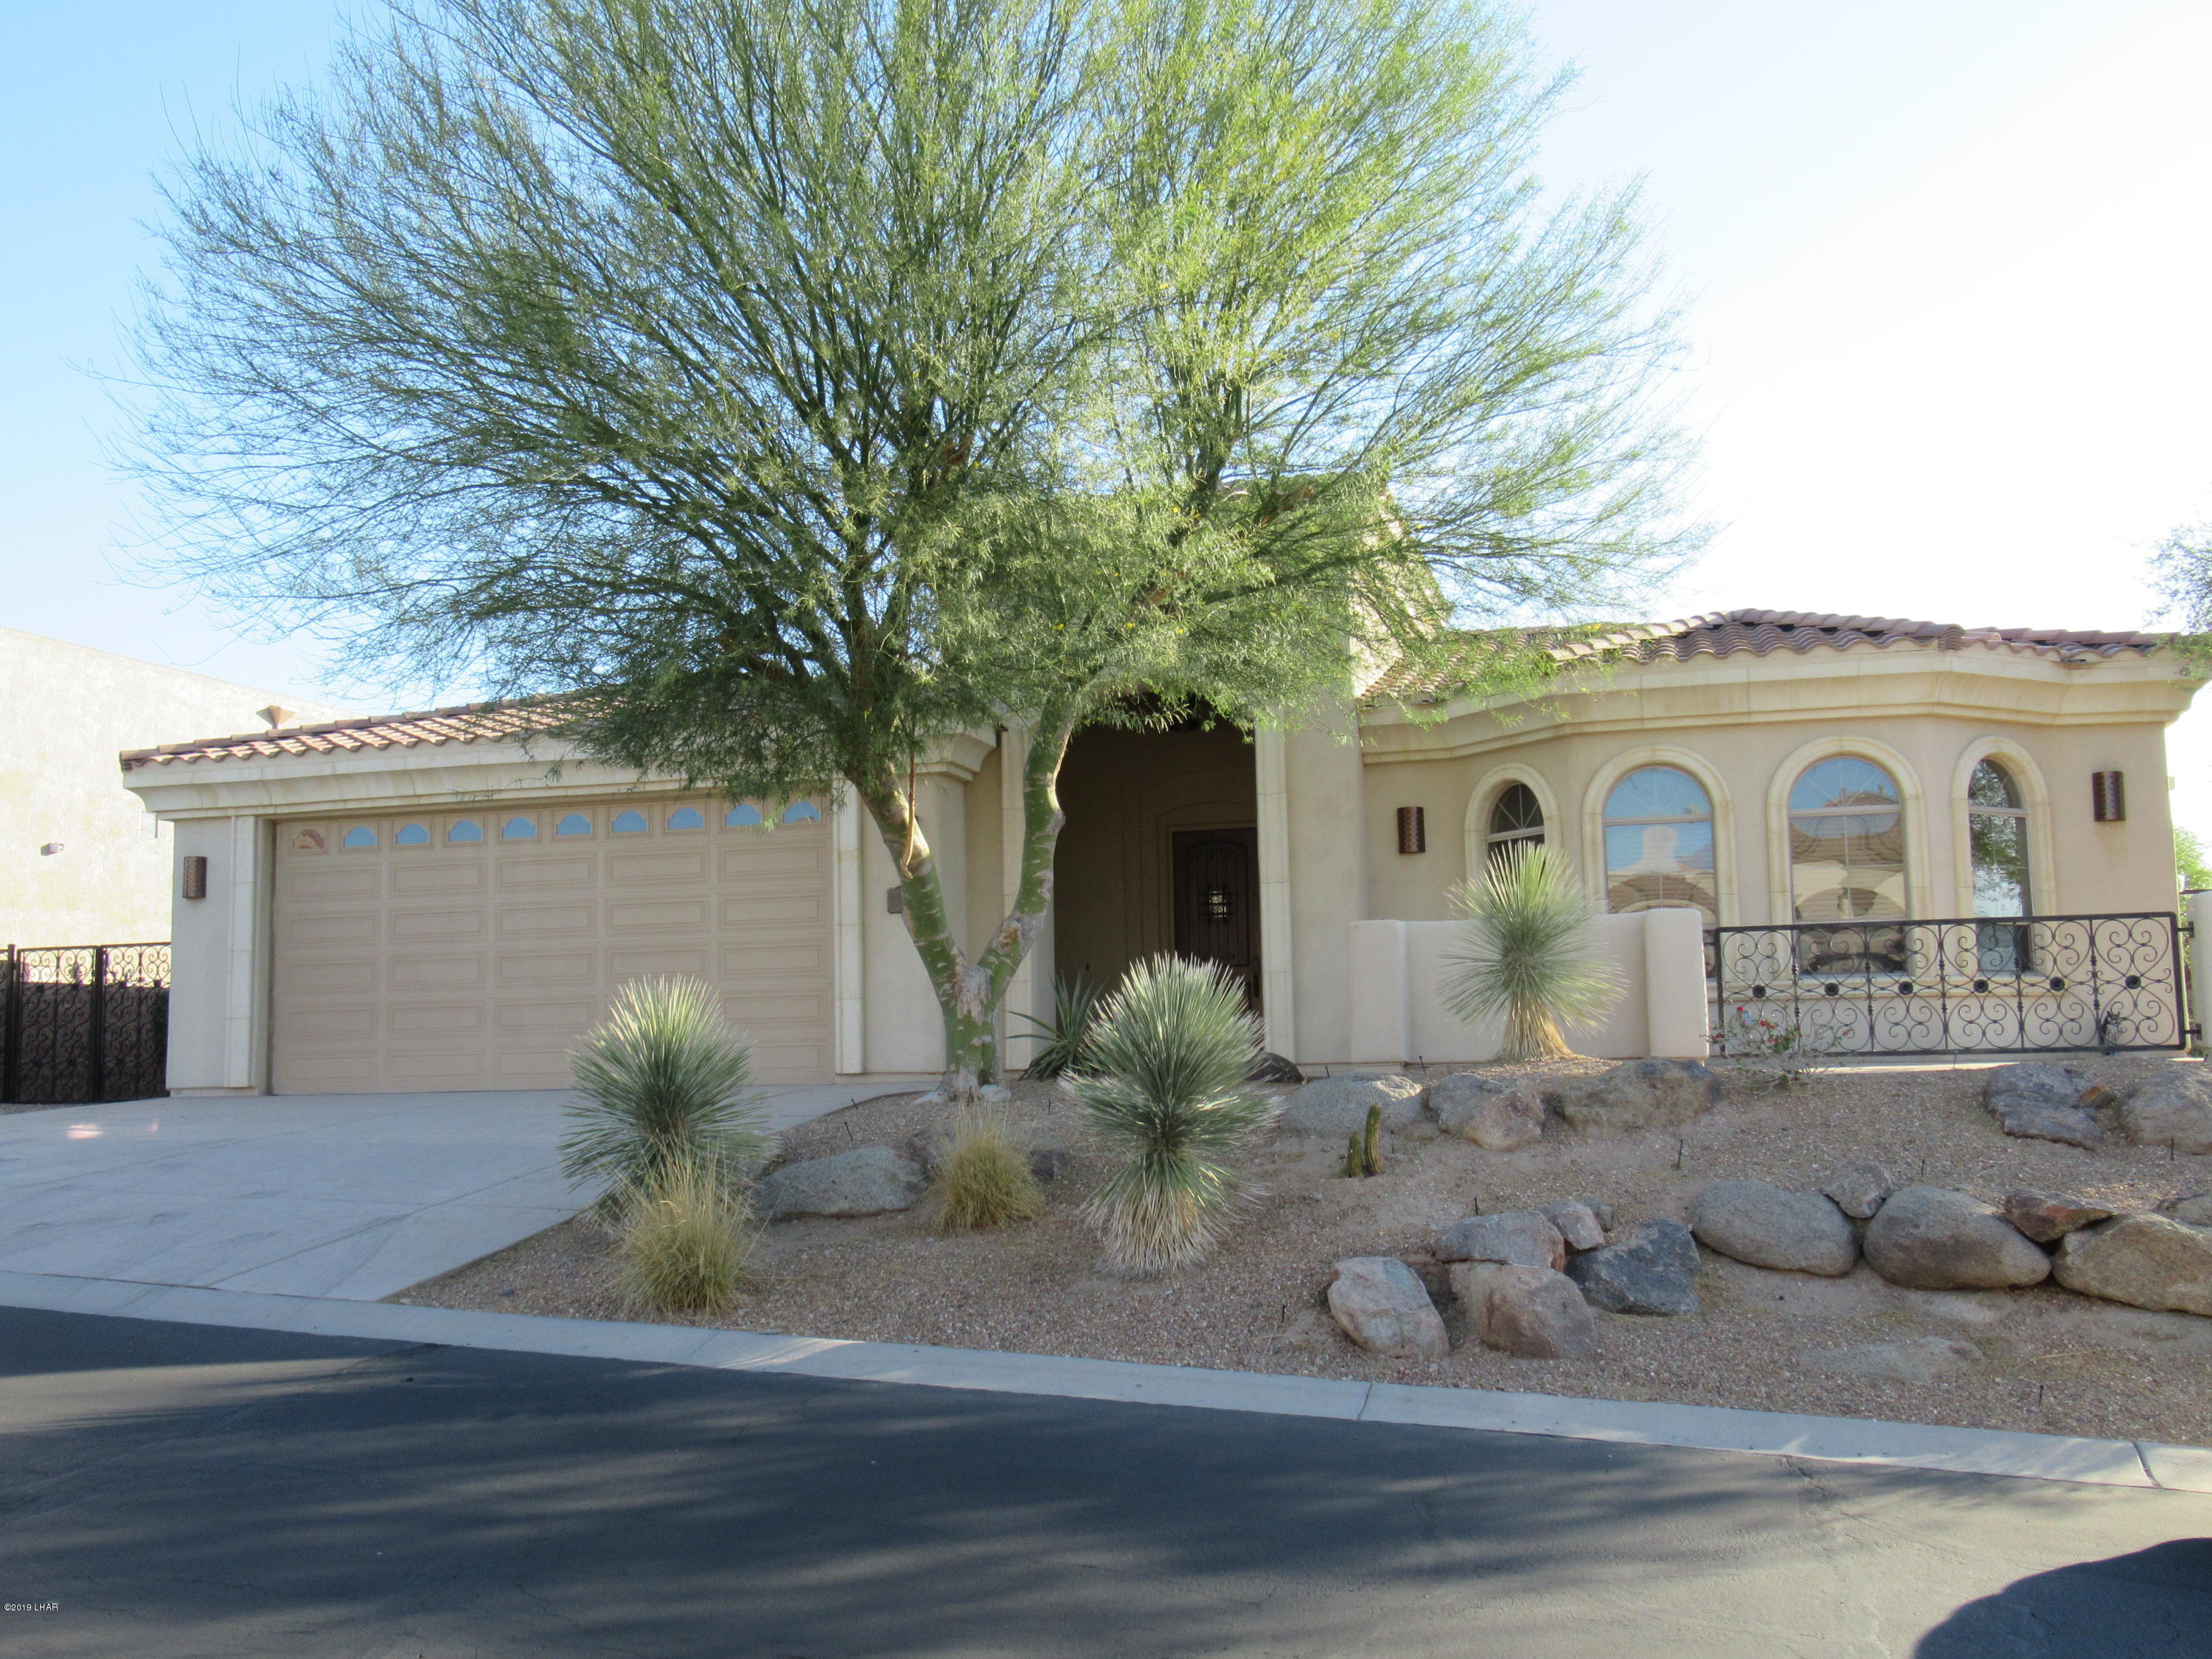 Photo of 3546 N Swilican Bridge Rd, Lake Havasu City, AZ 86404